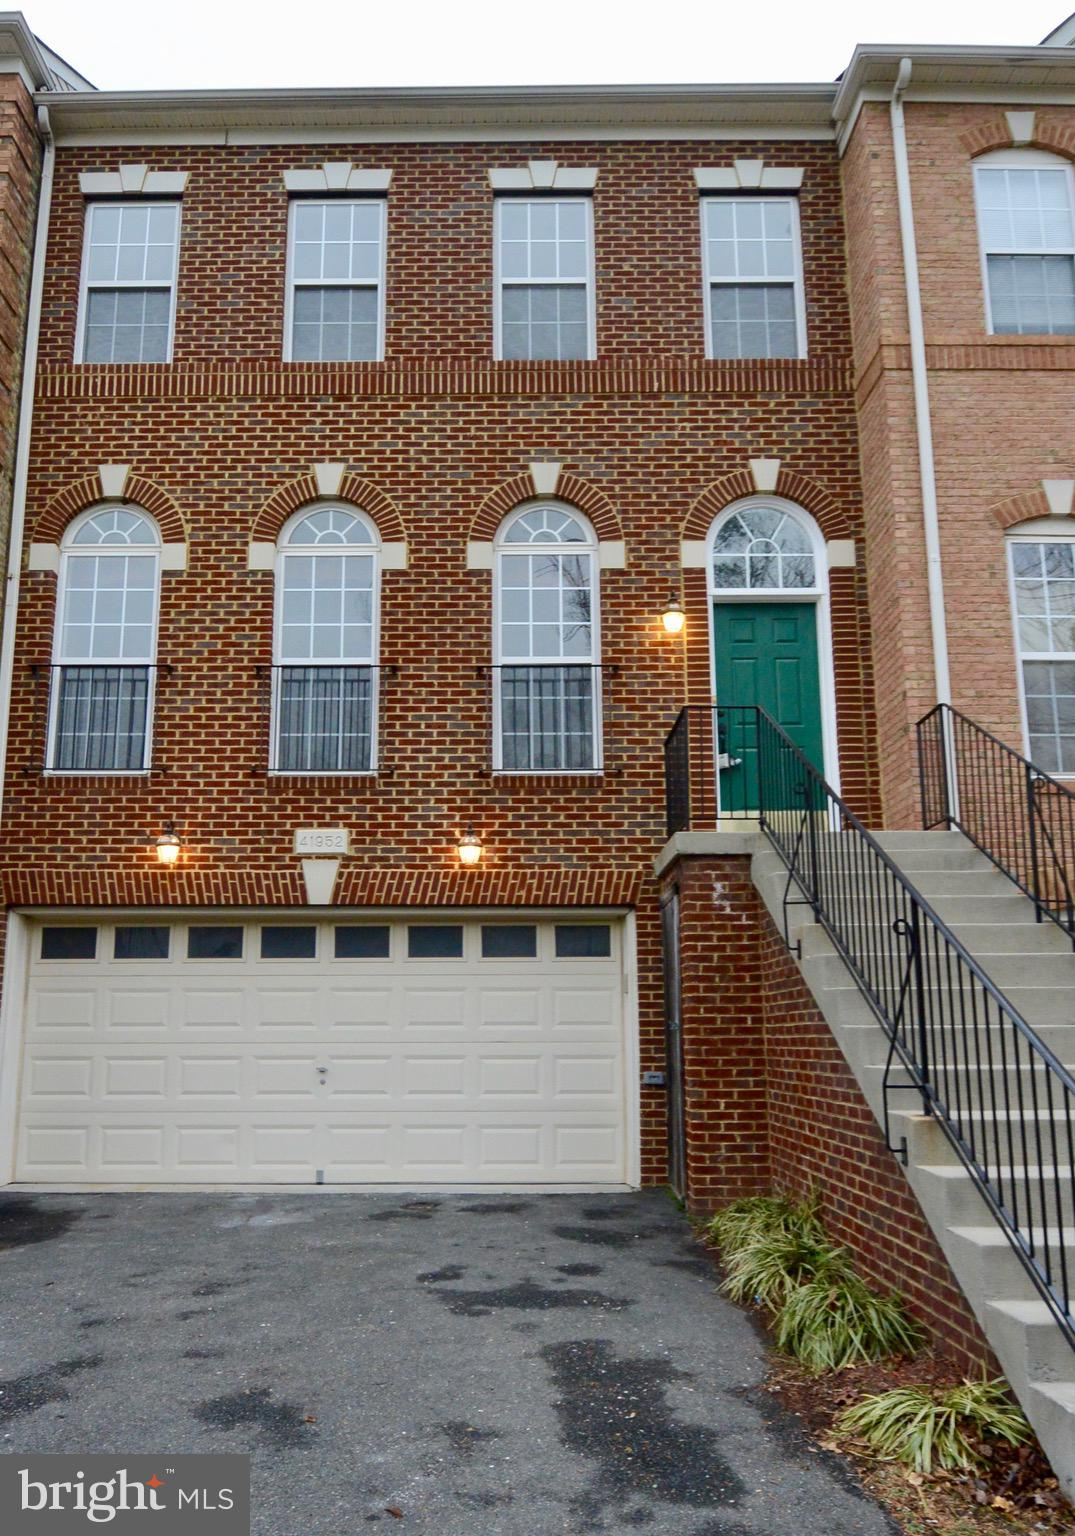 Lovely 3 level 2-car garage townhome in a great neighborhood, close to shopping and restaurants. Bri